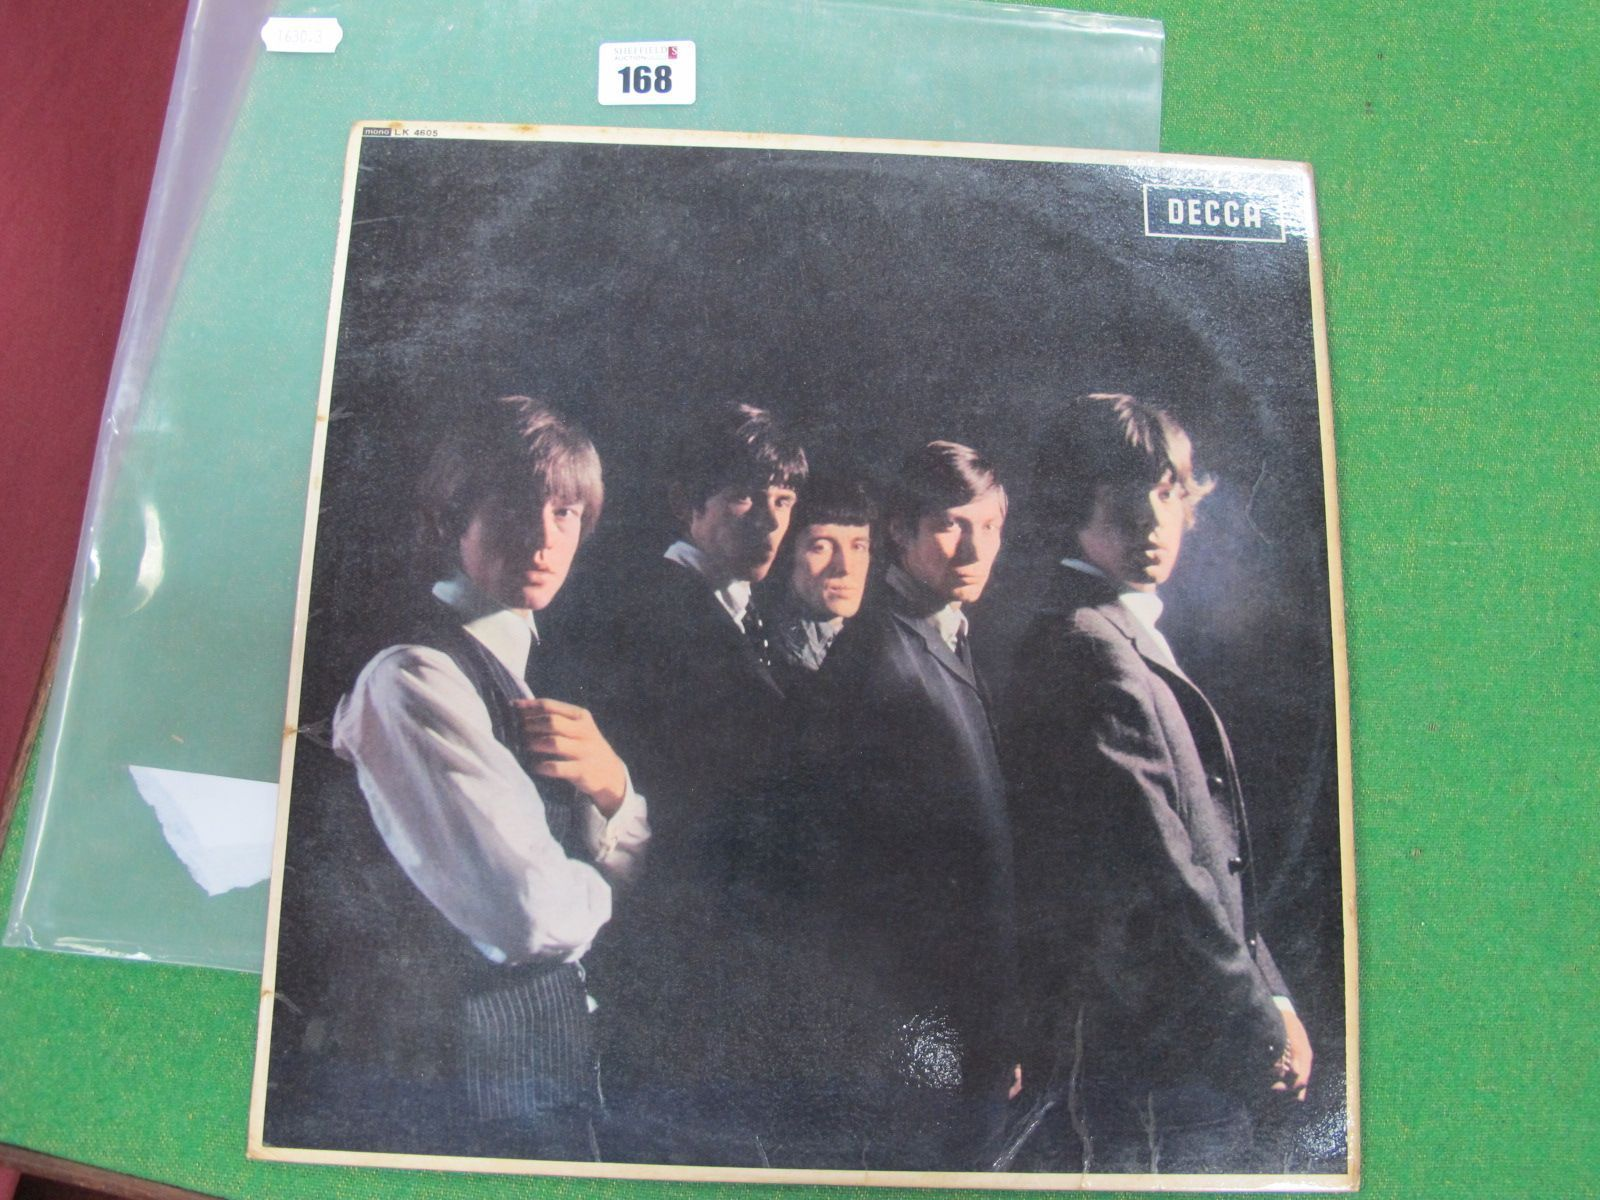 Rolling Stones 1964 L.P, Decca LK 4605, 2nd pressing that lists, 'I Need You Baby' on the read